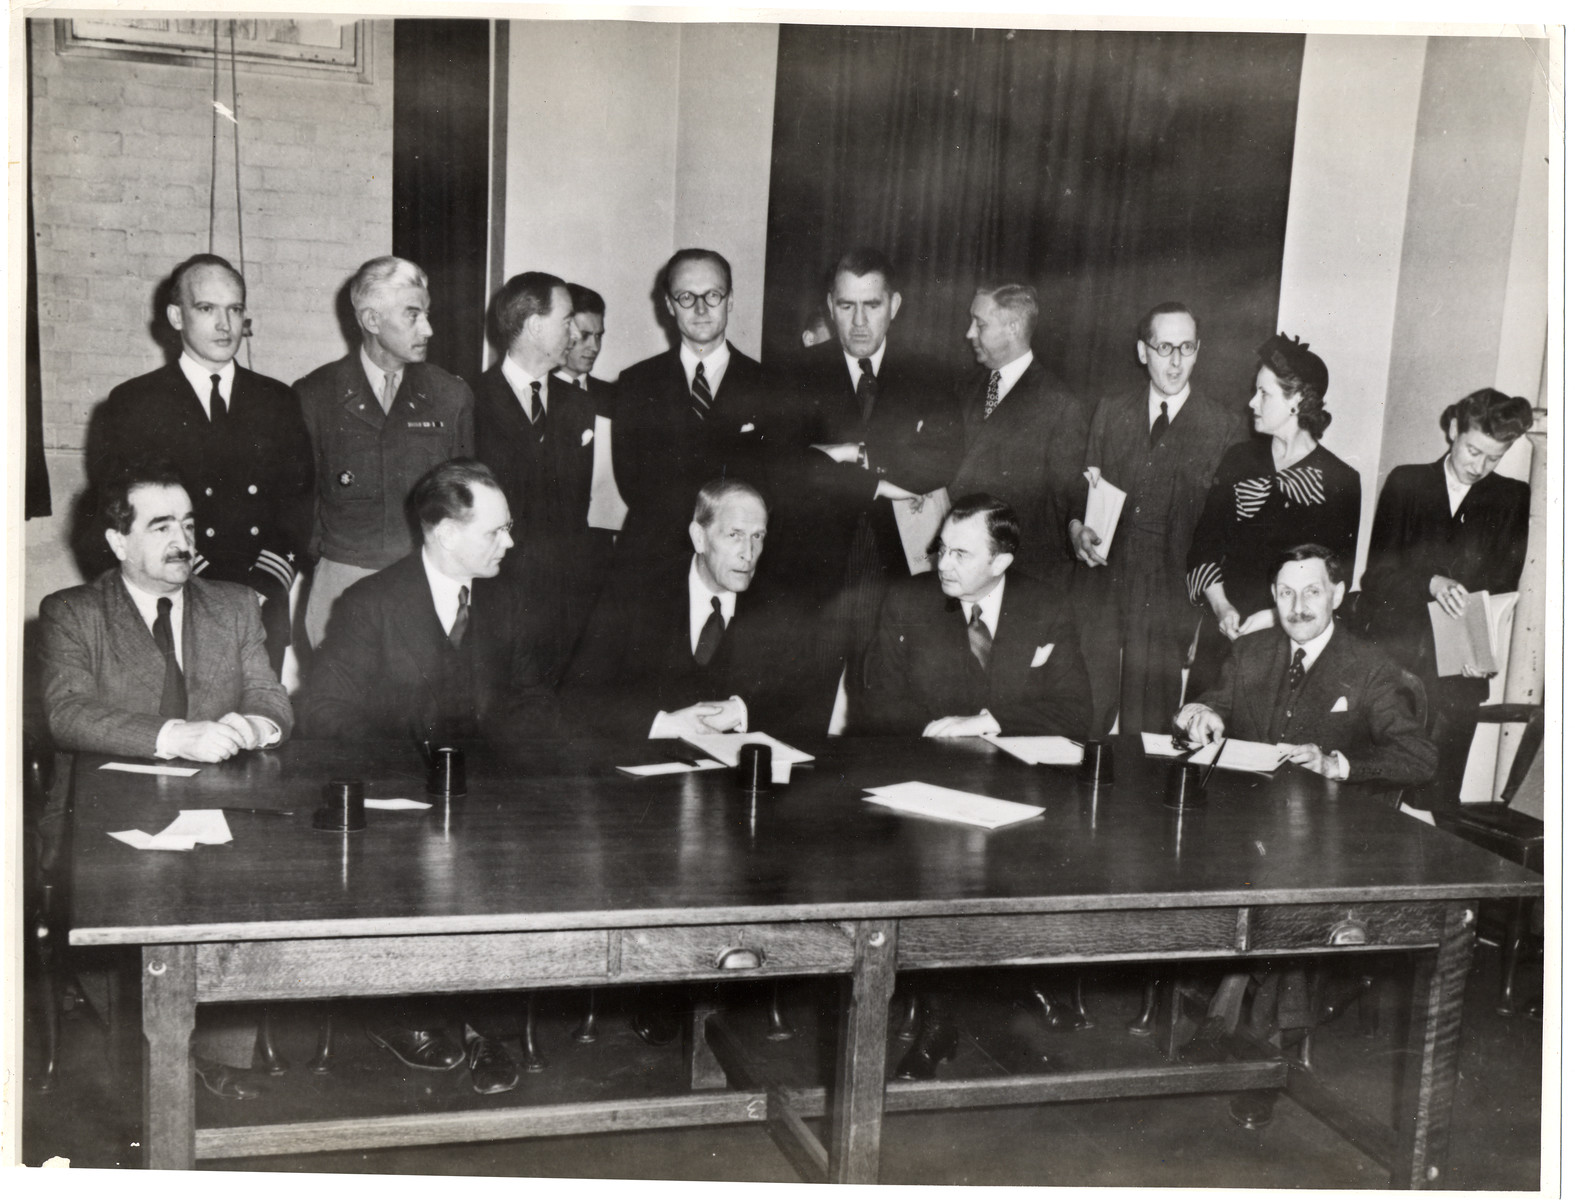 The members of the War Crimes Executive Committee at the signing of the agreement to create the International Military Tribunal to prosecute German war criminals.    Among those pictured are Major General I.T. Nikitchenko (second from the left) who will represent the U.S.S.R. on the Tribunal, Justice Robert Jackson (second from the right) who will be the chief U.S. prosecutor, and Robert Falco (right), who will be the alternate French member of the Tribunal.